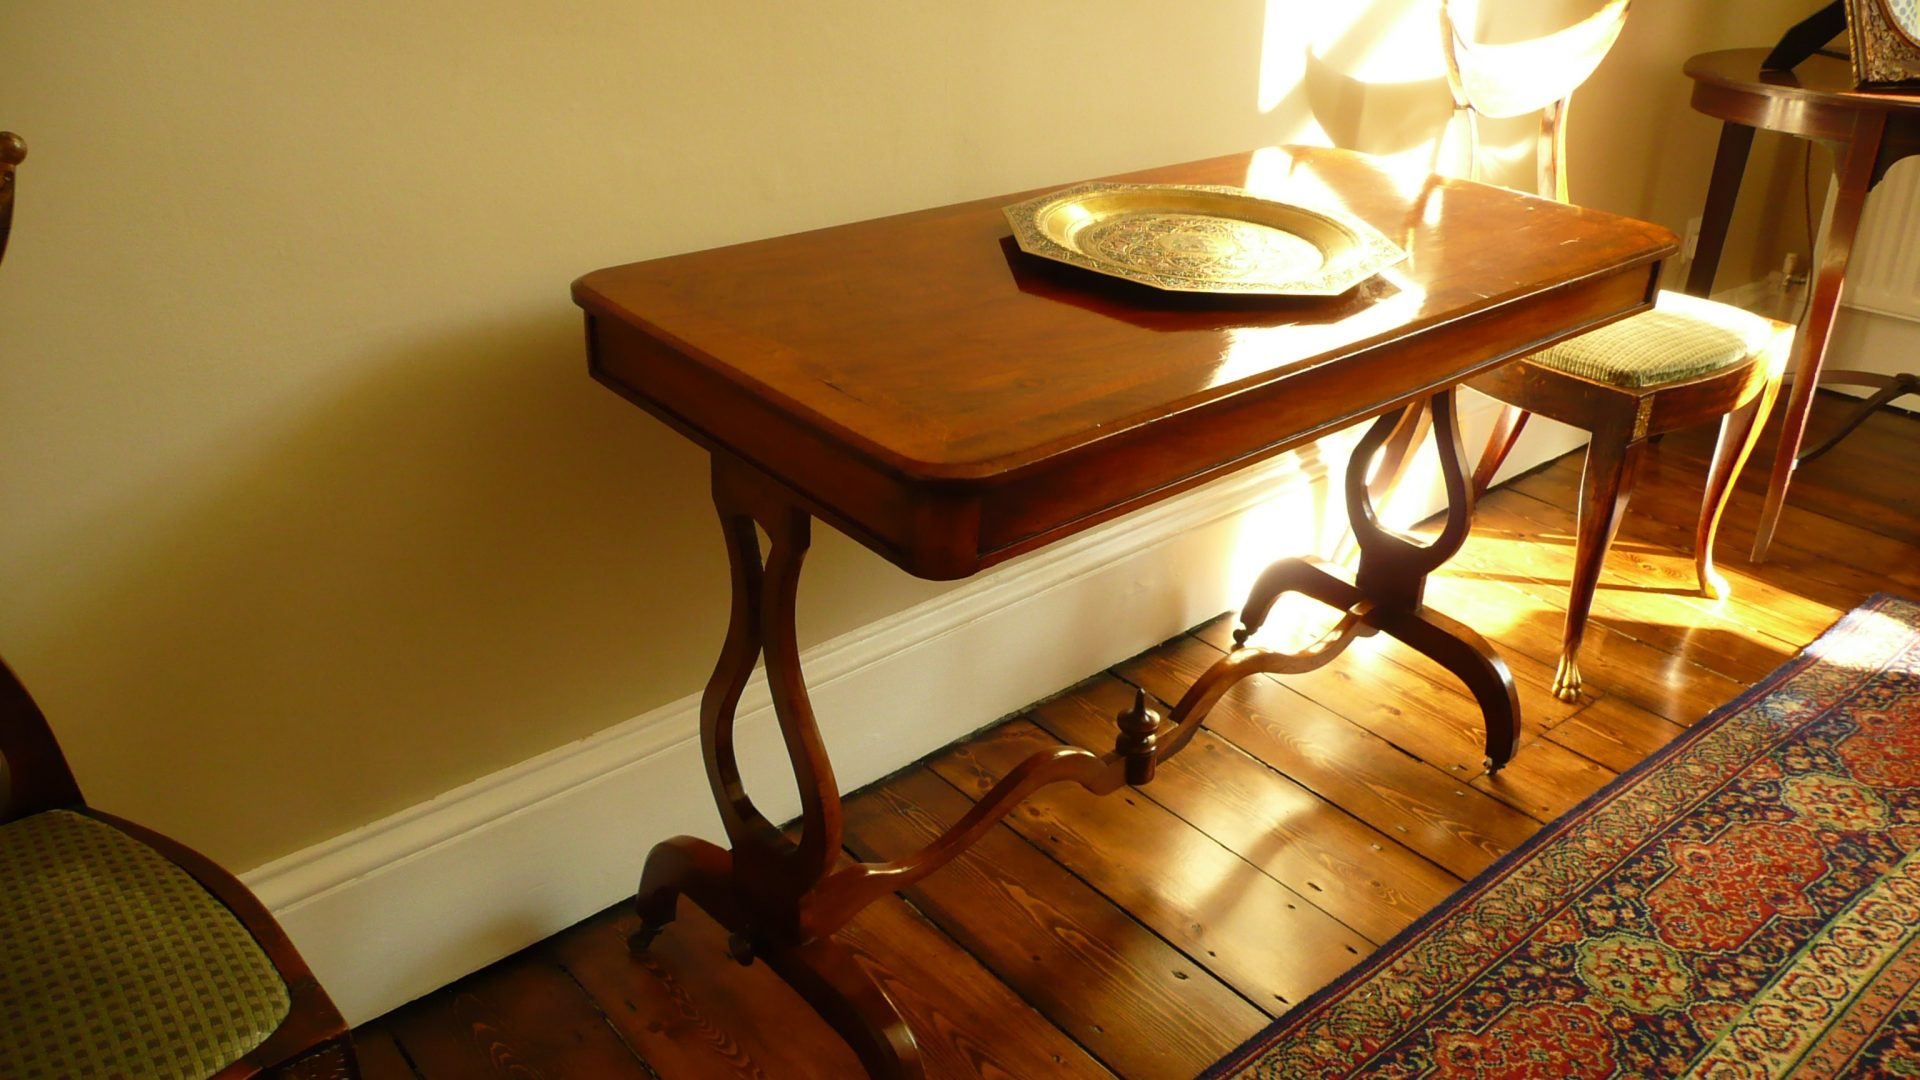 wooden-table-renovated